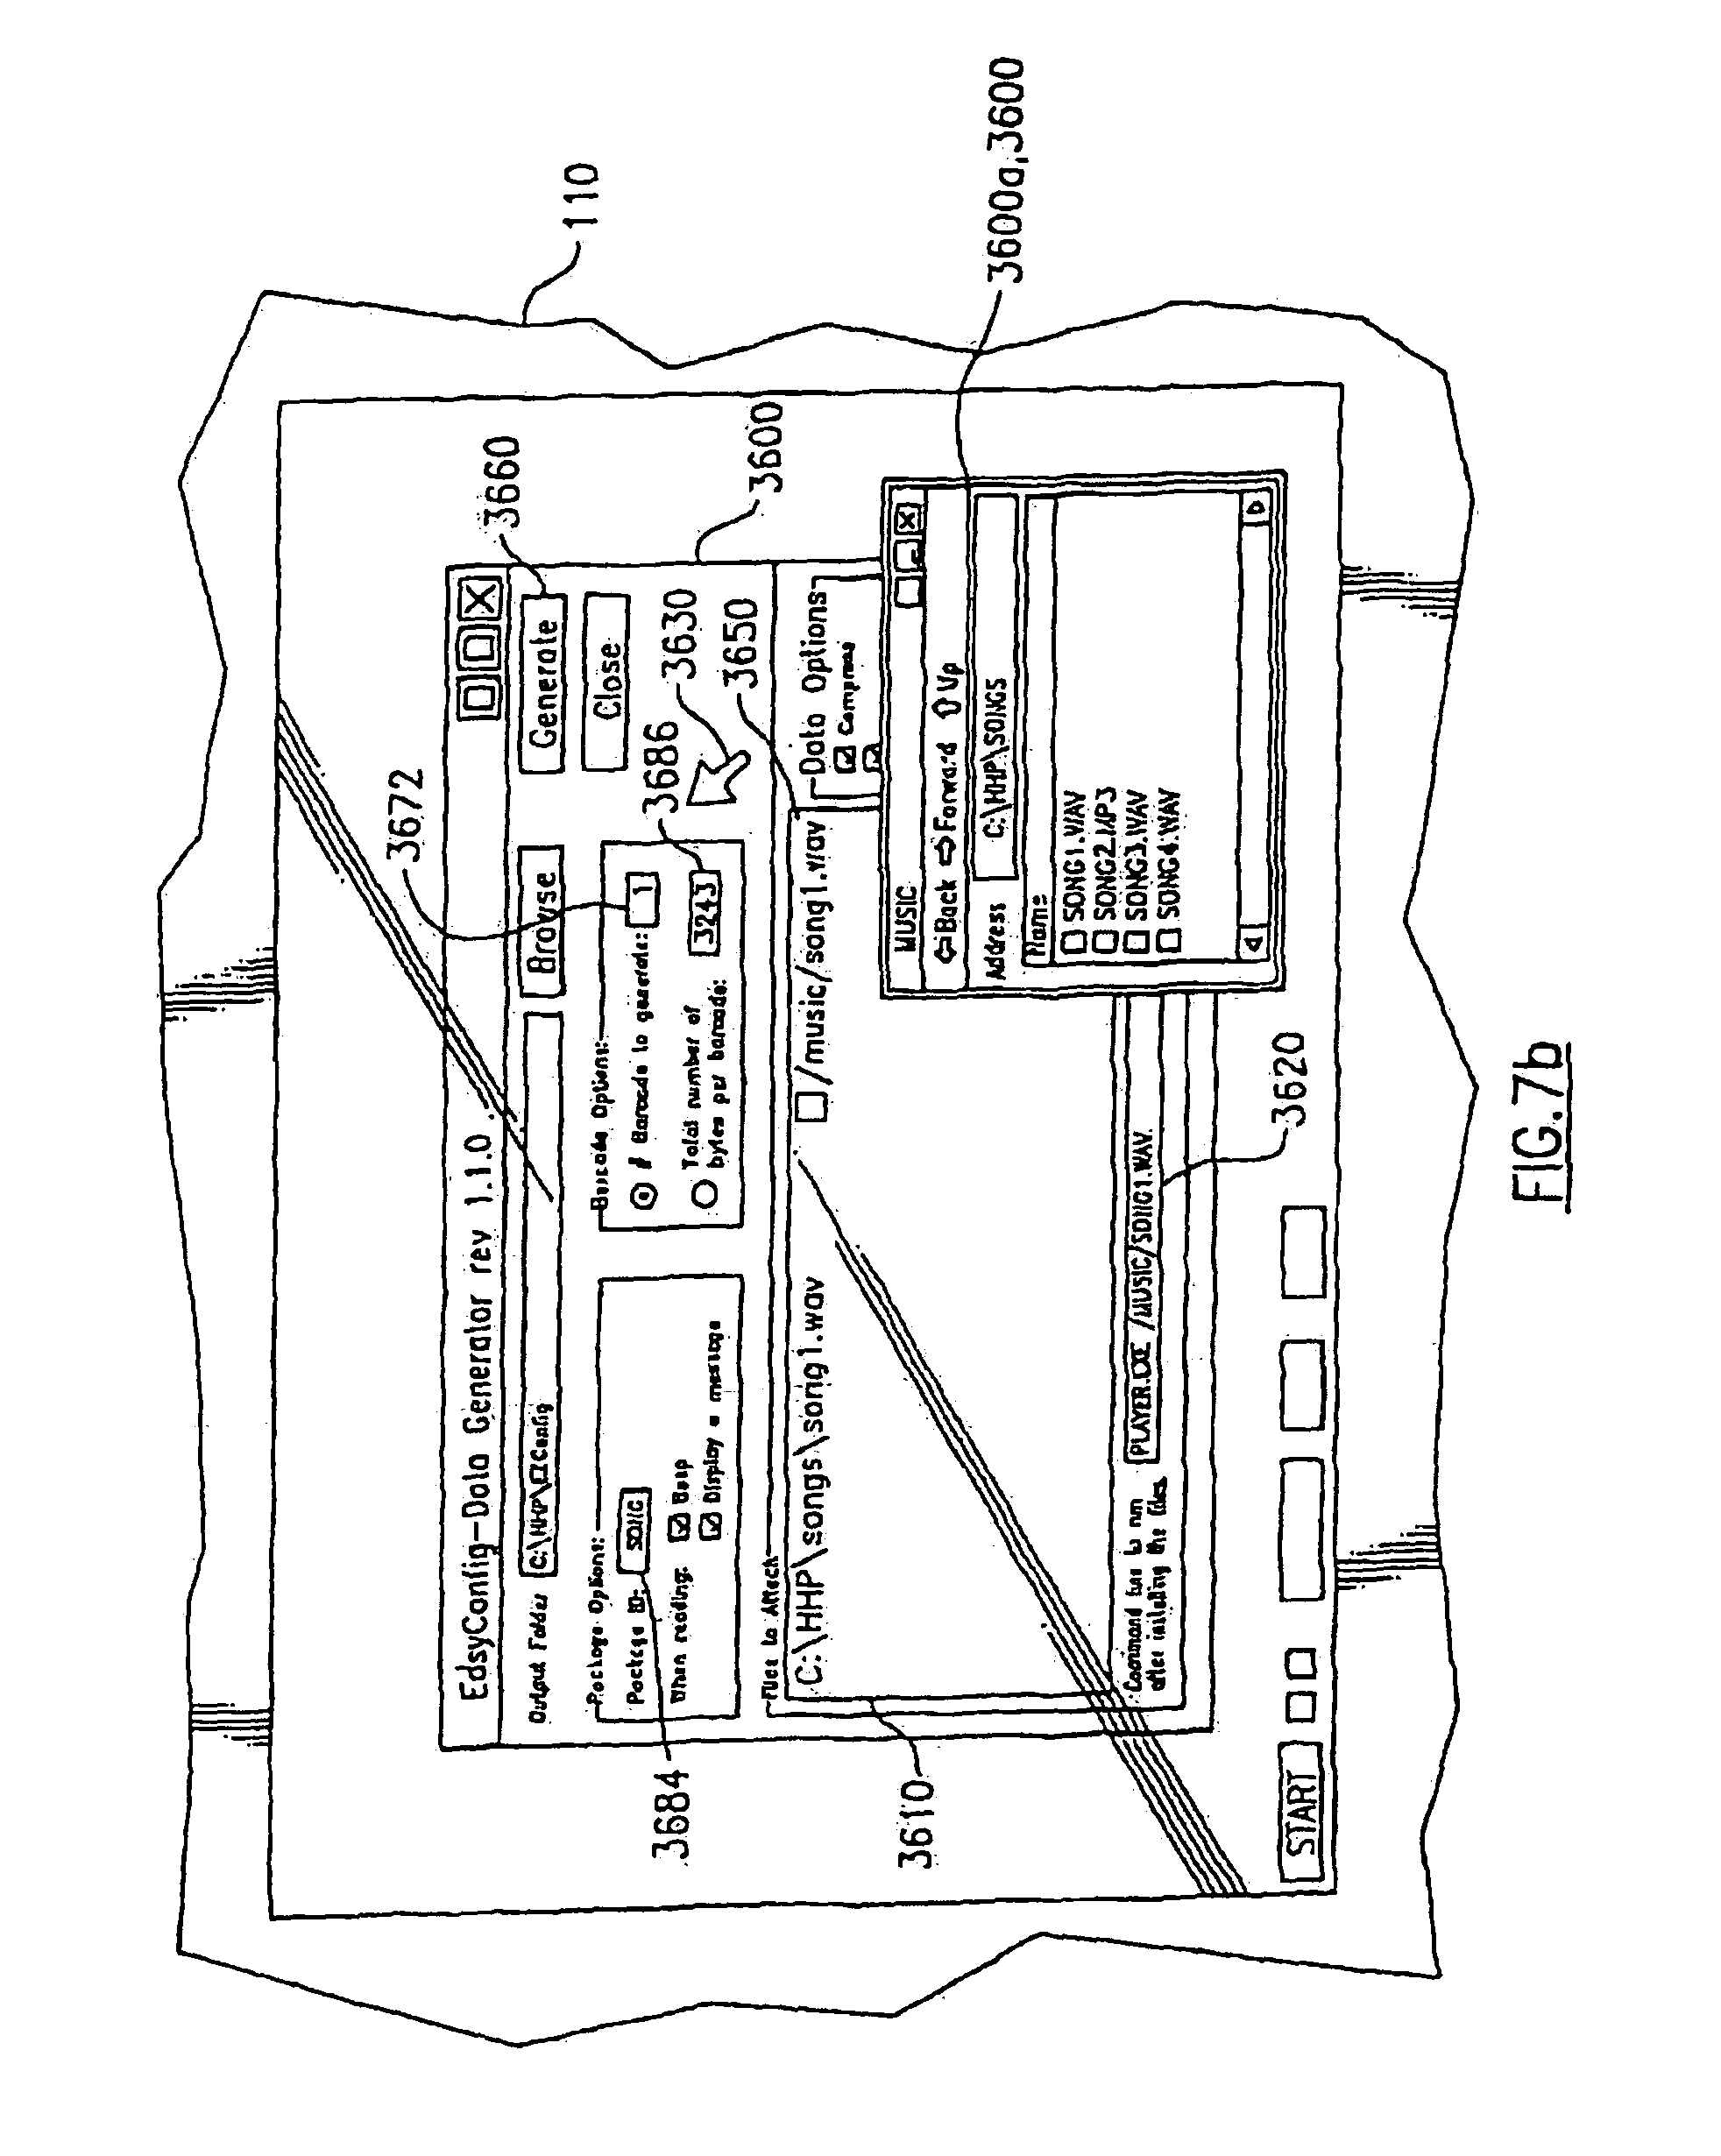 Patent Us8196832 Reprogramming System And Method For Devices Videx Smart 1 Wiring Diagram Drawing